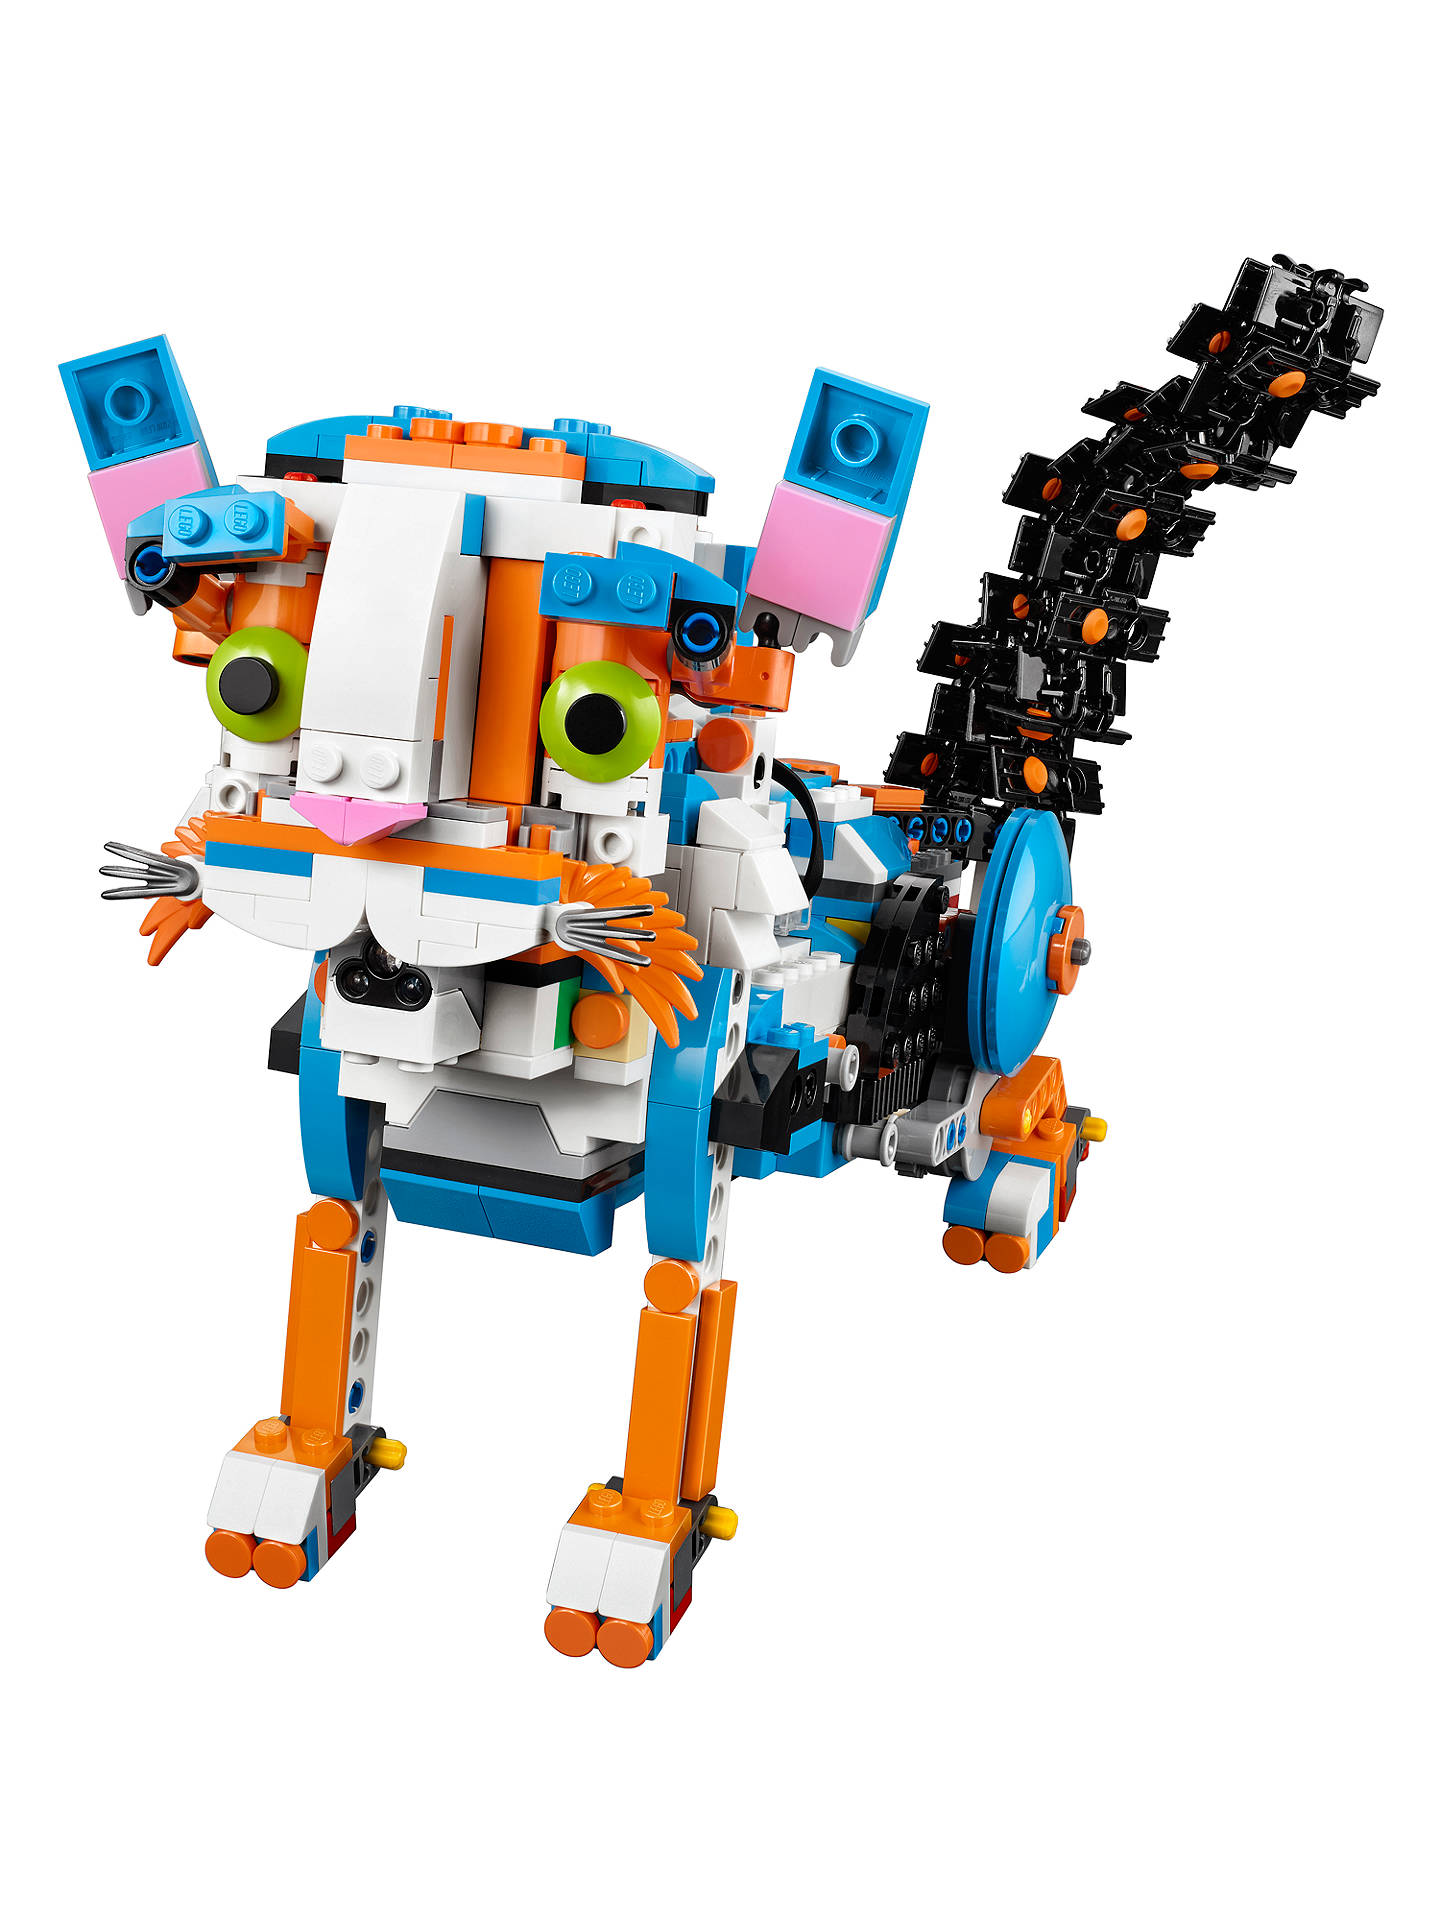 The toolbox has a total of 843 pieces and you can use it to build five different robots.